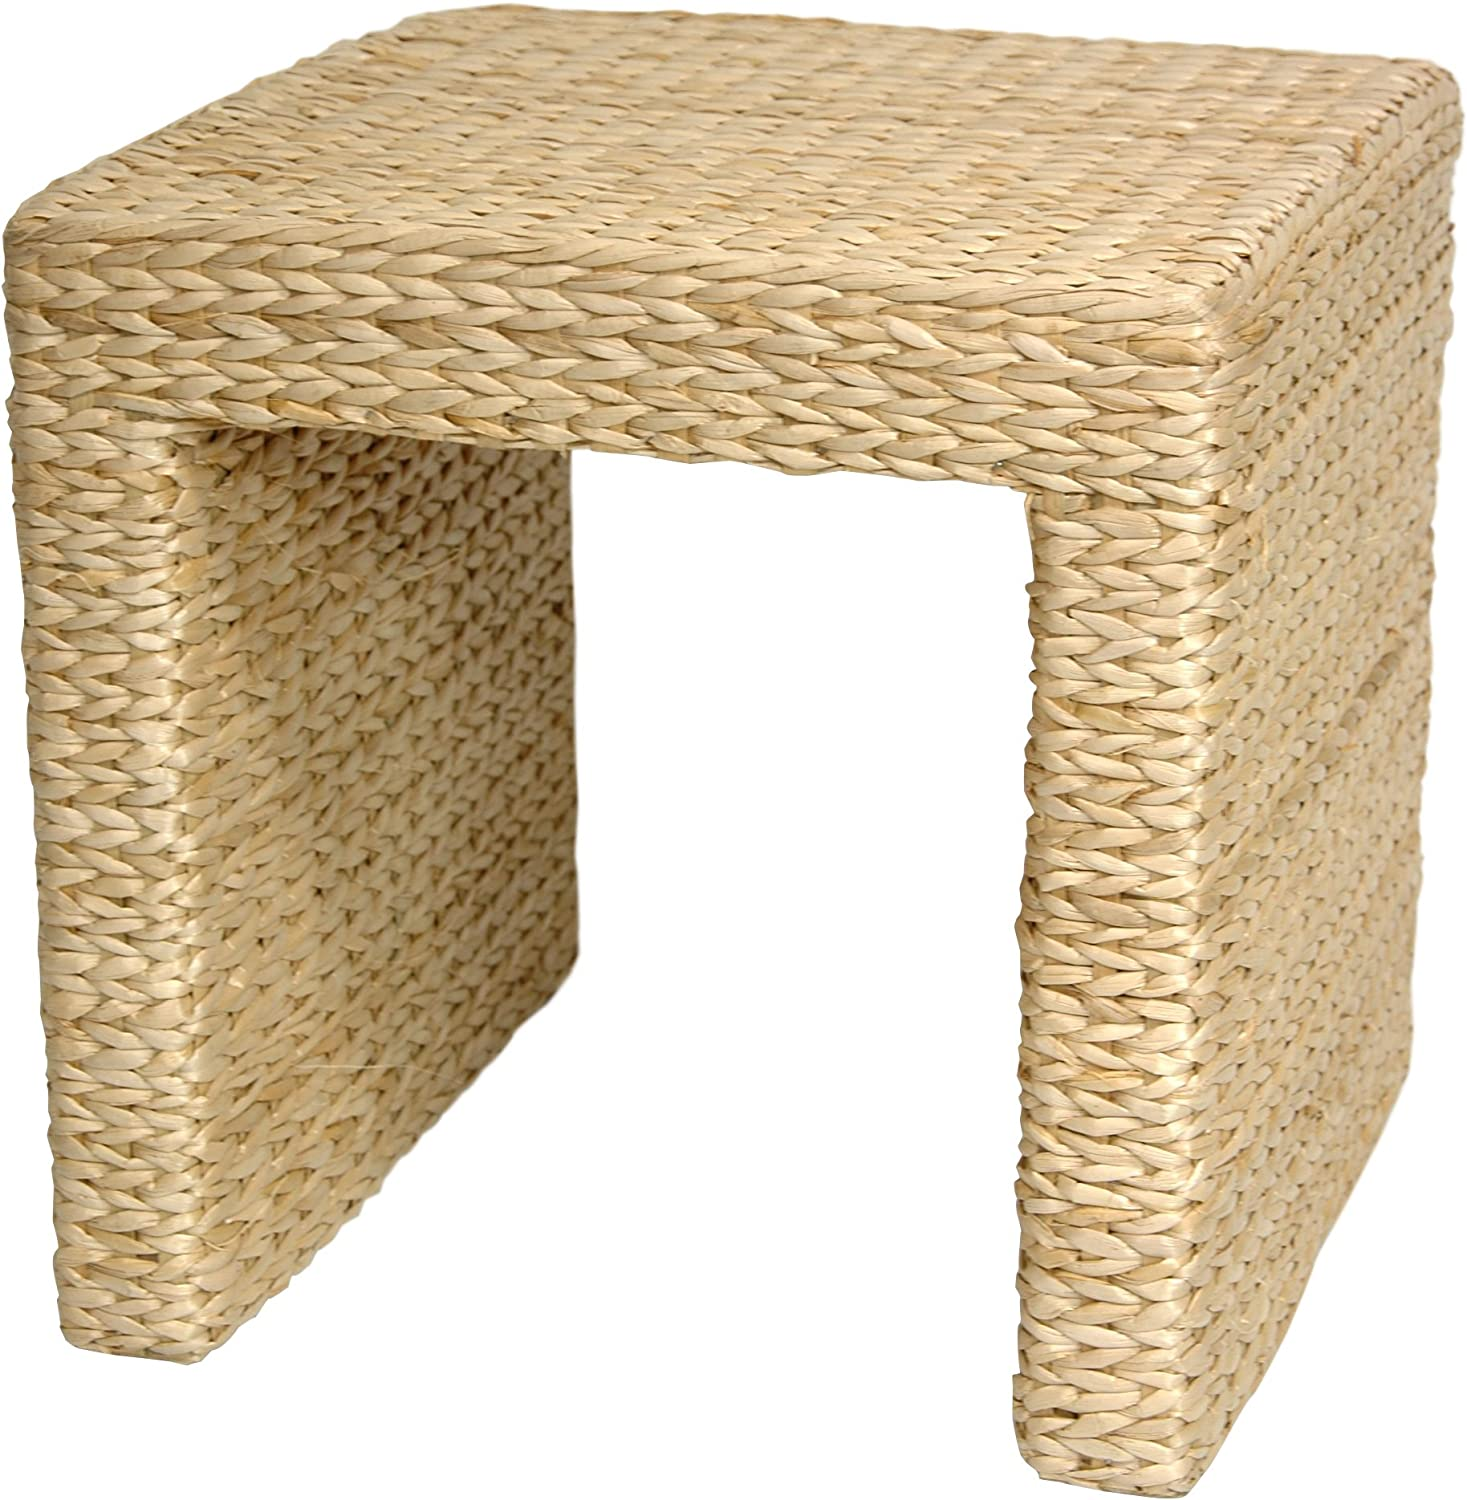 Oriental Furniture Excellent Simple Rustic Beautiful, 18-Inch Woven Fiber Water Hyacinth Rattan Style Square End Table Night Stand, Natural